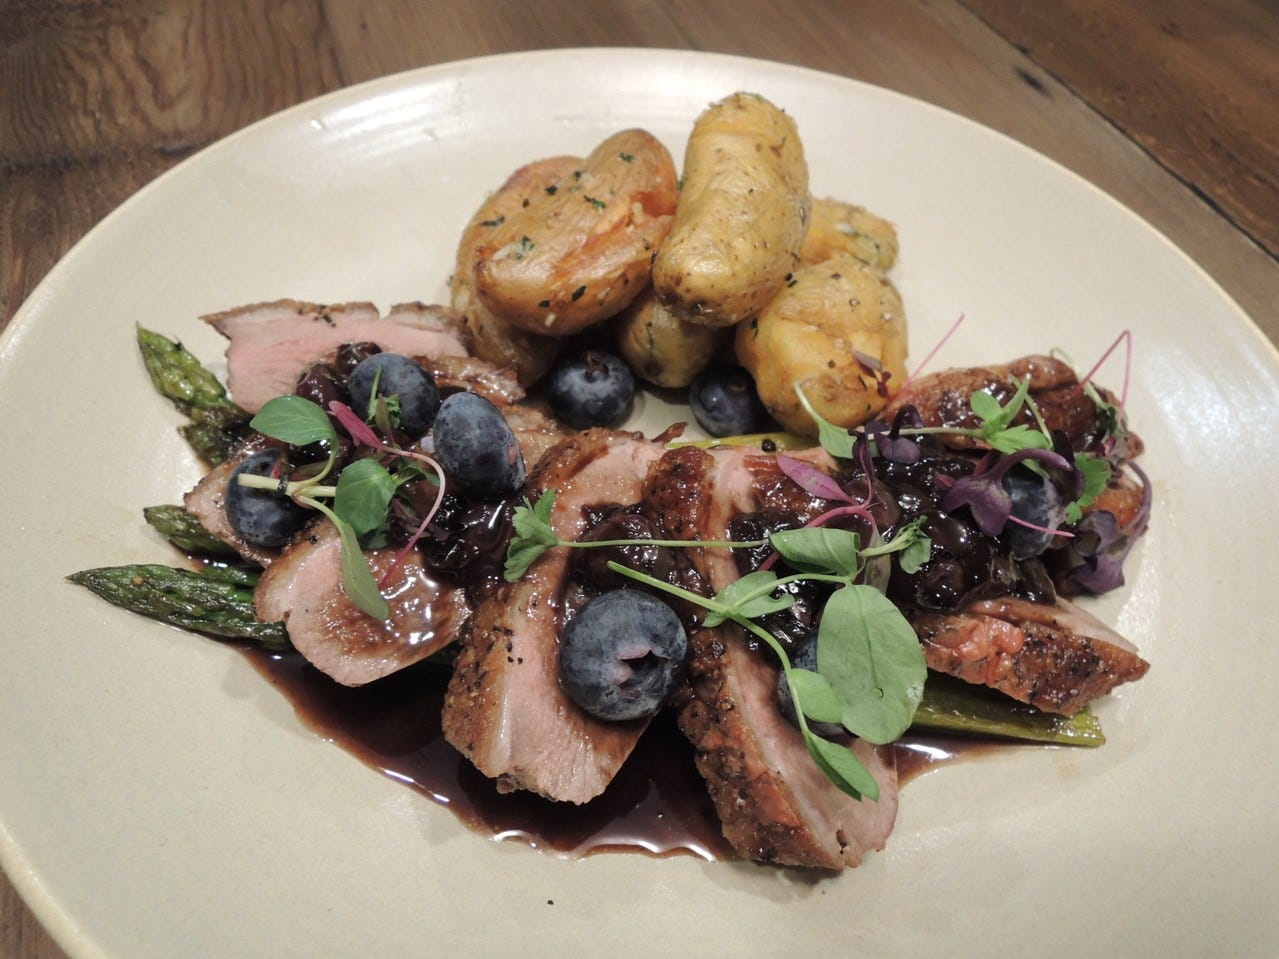 The duck special at the Woodside Grill, a creation of new executive chef Josh Lozoya.